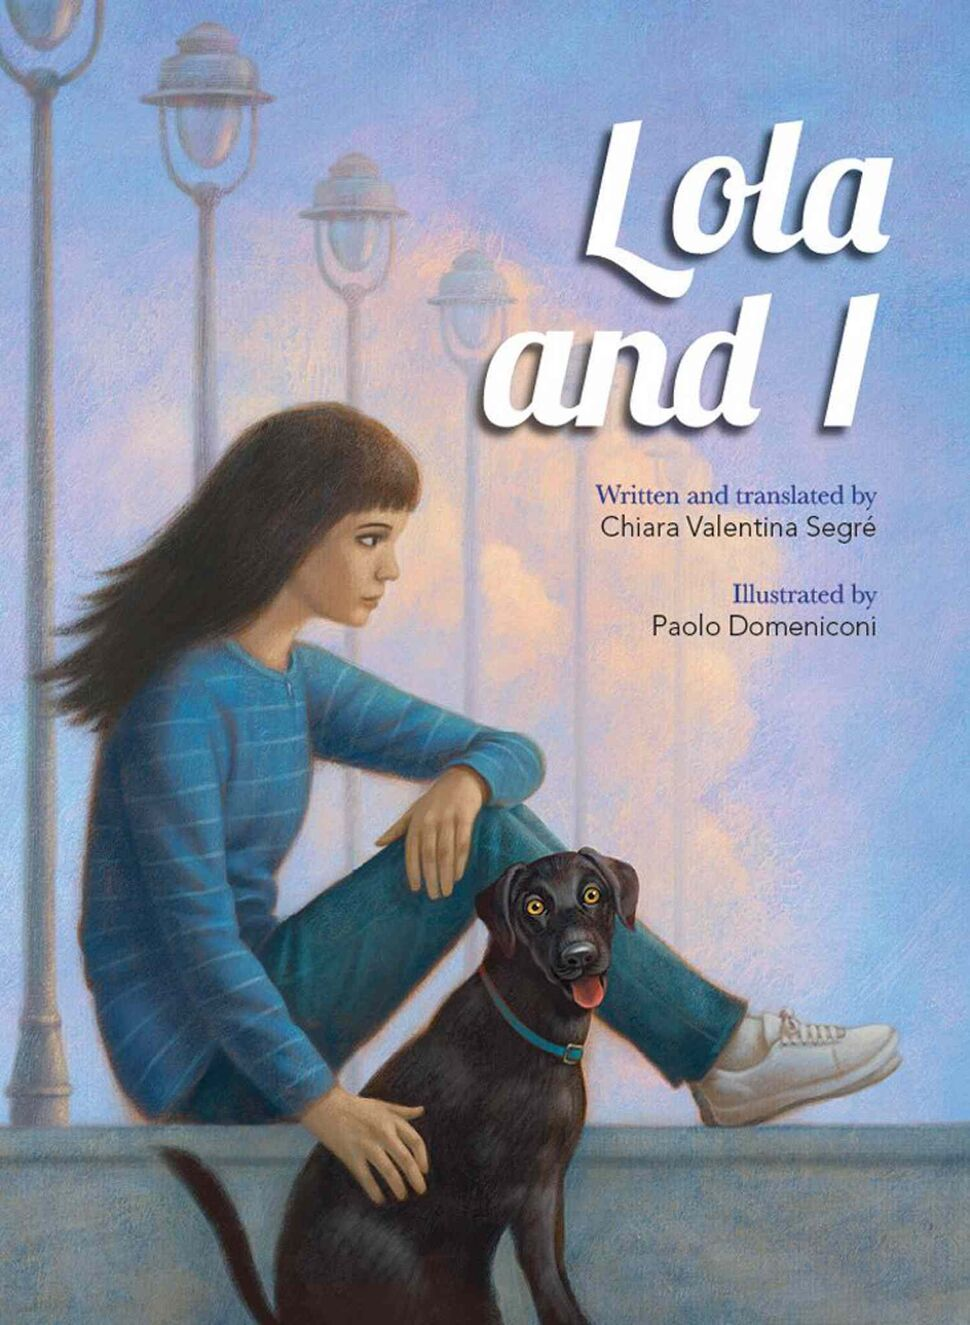 <h3>Lola and I</h3> <br/> By Chiara Velentina Segré, illustrated by Paolo Domeniconi <br/> <strong>Showing both the love between a dog and his owner as well as emphasizing that people with disabilities can do as much or more than those without, this picture book will appeal to youngest readers (ages four to nine).</strong> <br/> — Helen Norrie